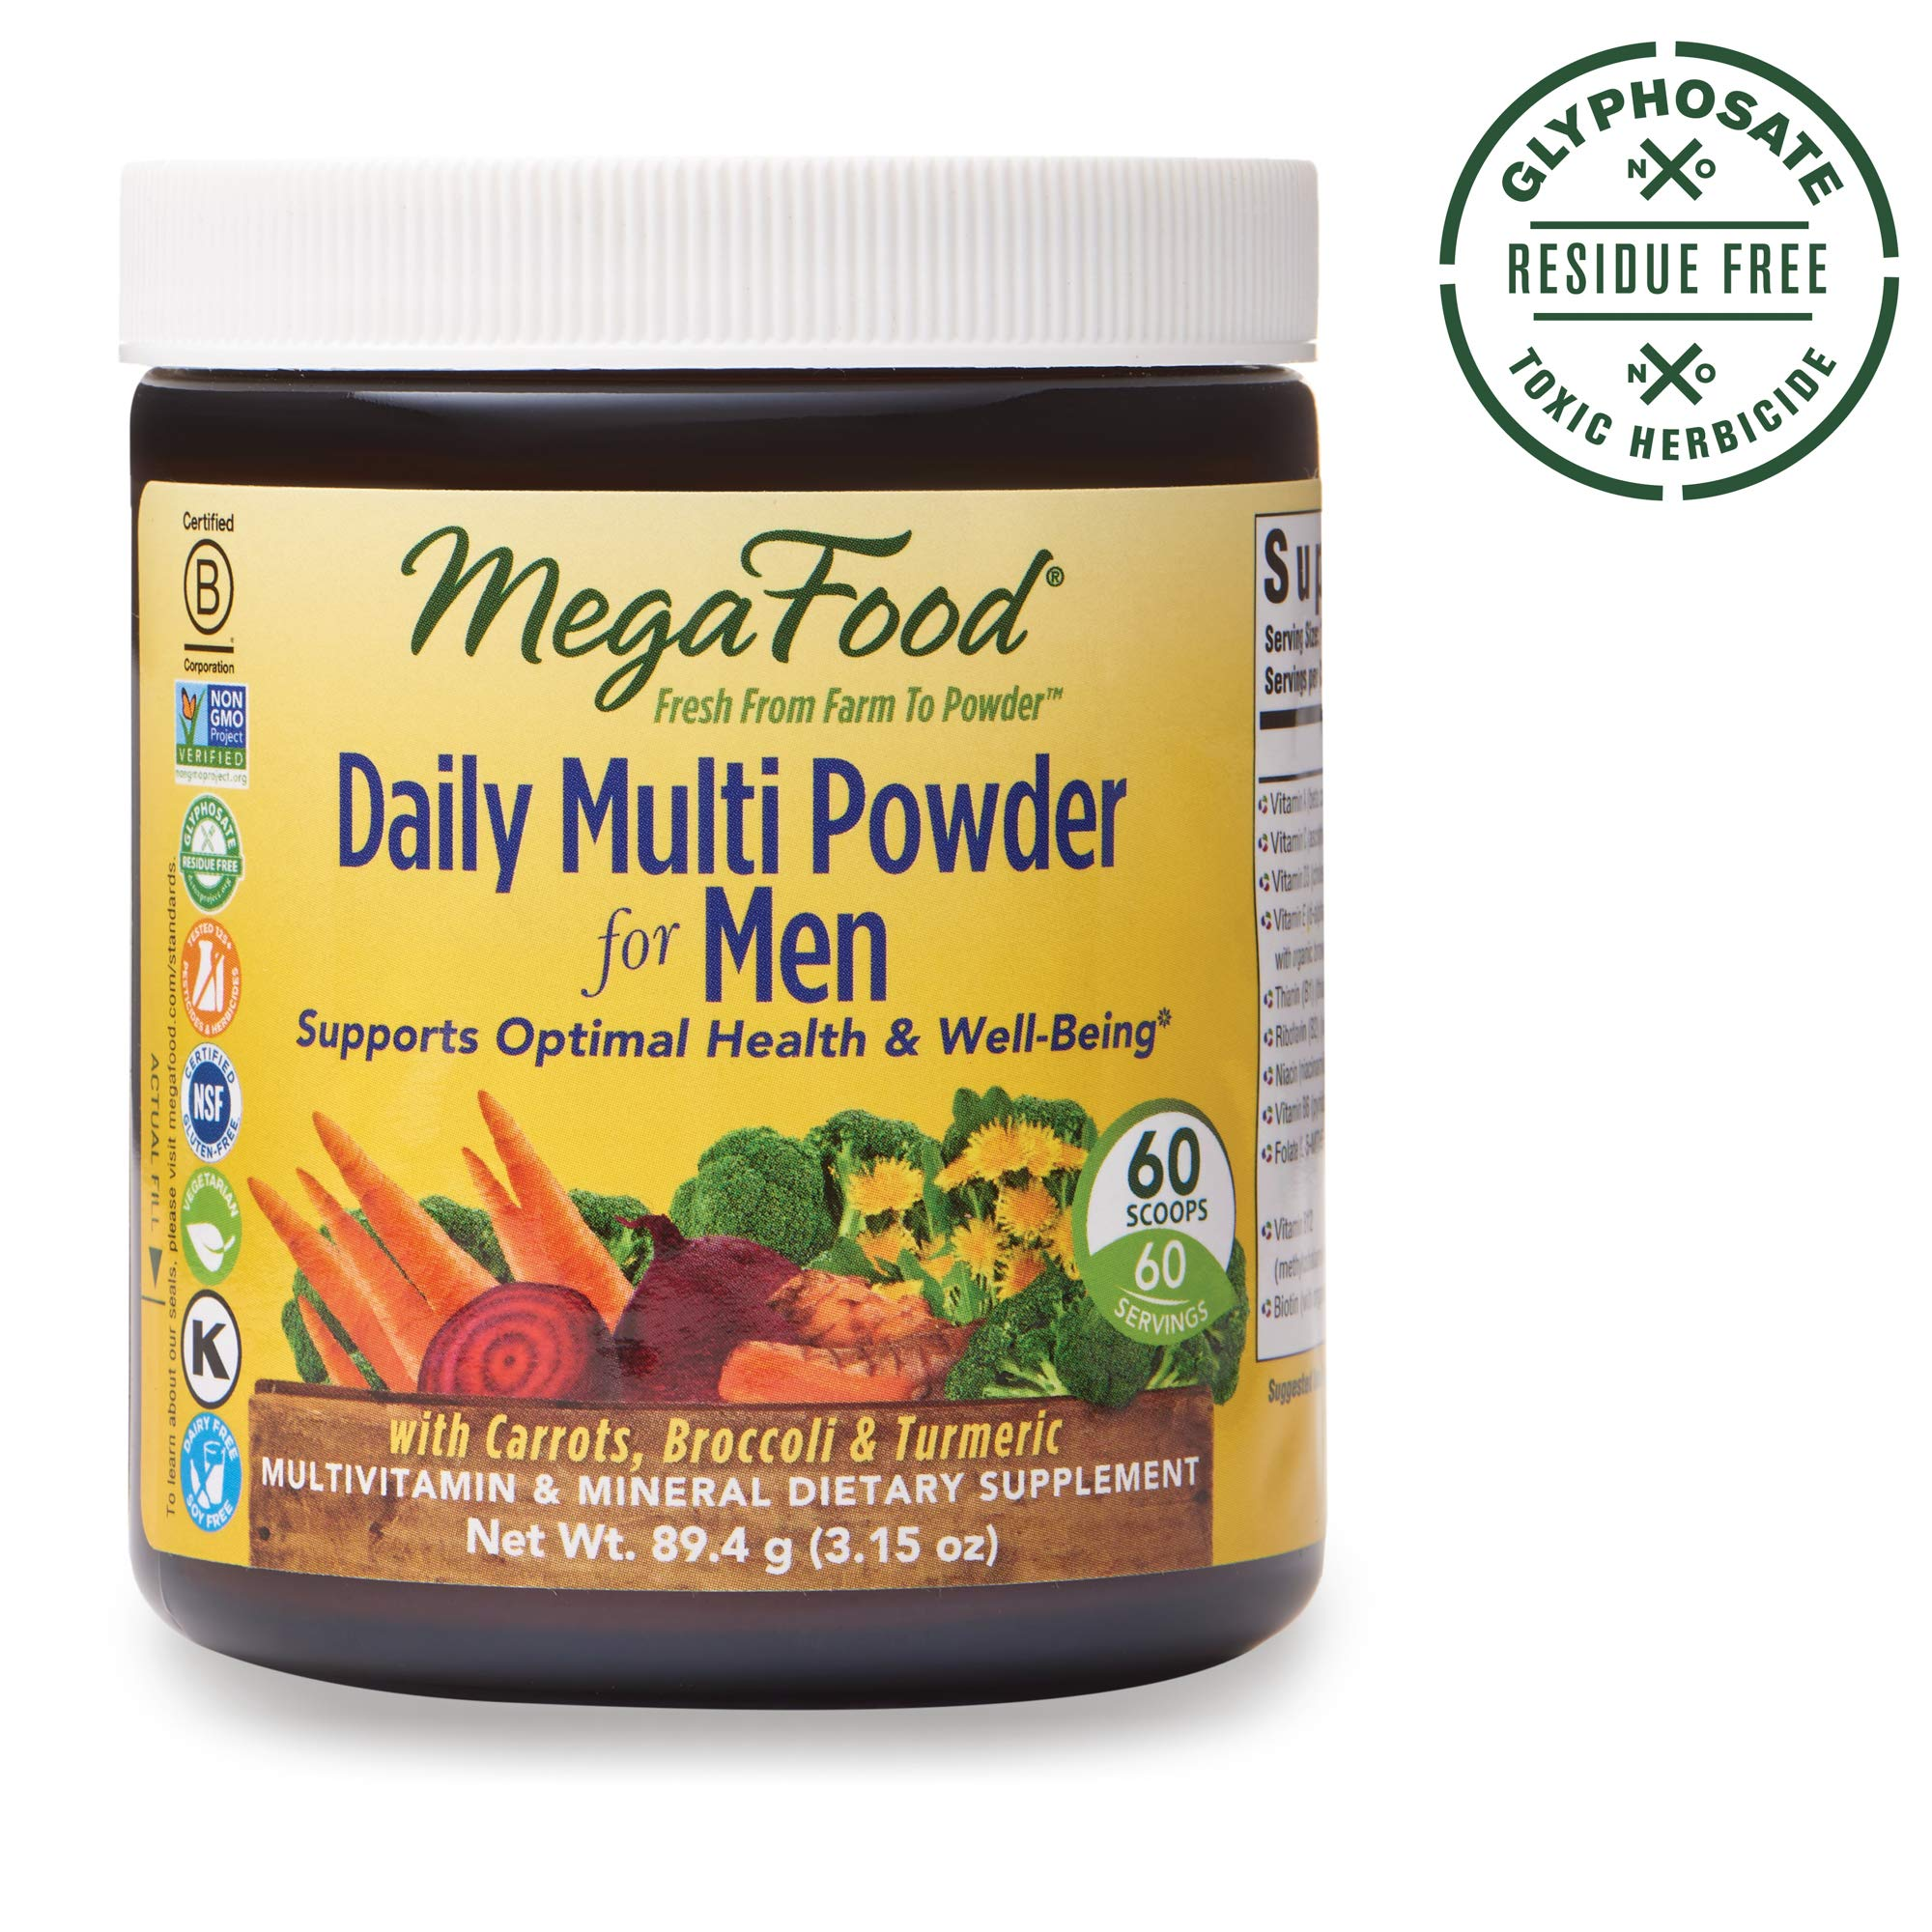 MegaFood, Daily Multi Powder for Men, Supports Optimal Health, Multivitamin and Mineral Supplement, Gluten Free, Vegetarian, 3.15 oz (60 Servings) by MegaFood